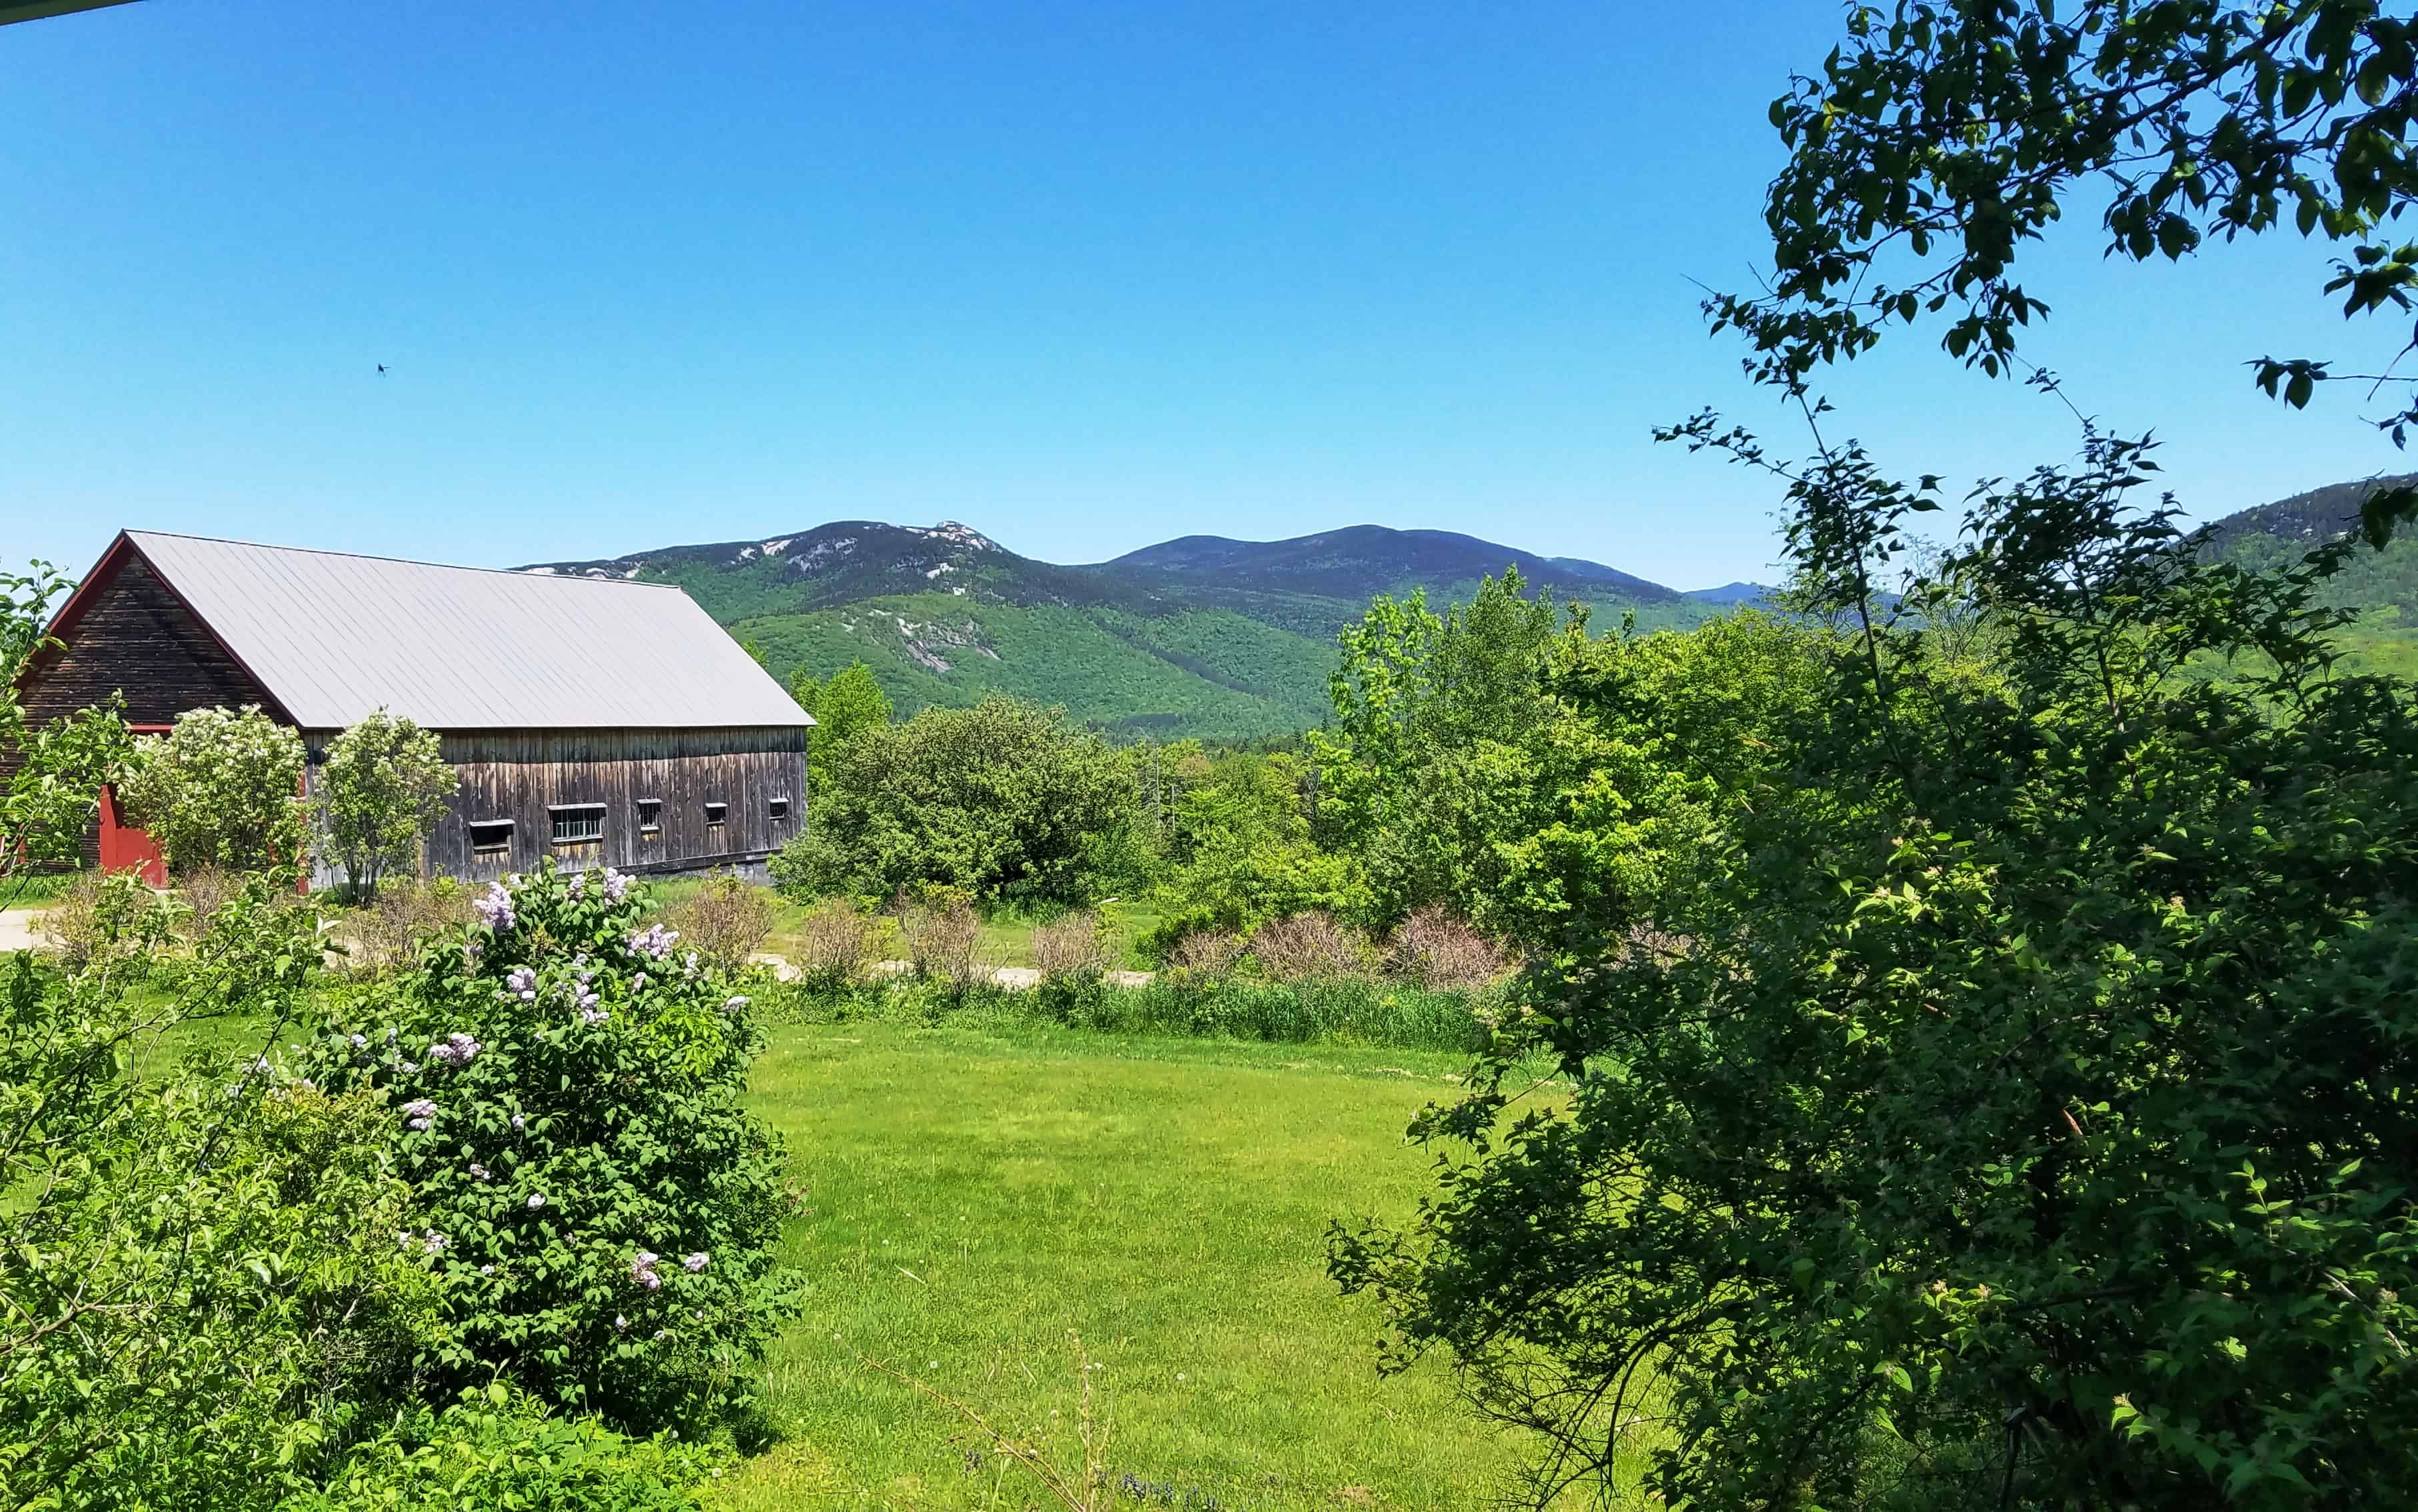 Field and Barn 115 Sandwich Notch Road, Thornton, NH 03285 Alpine Lakes Real Estate